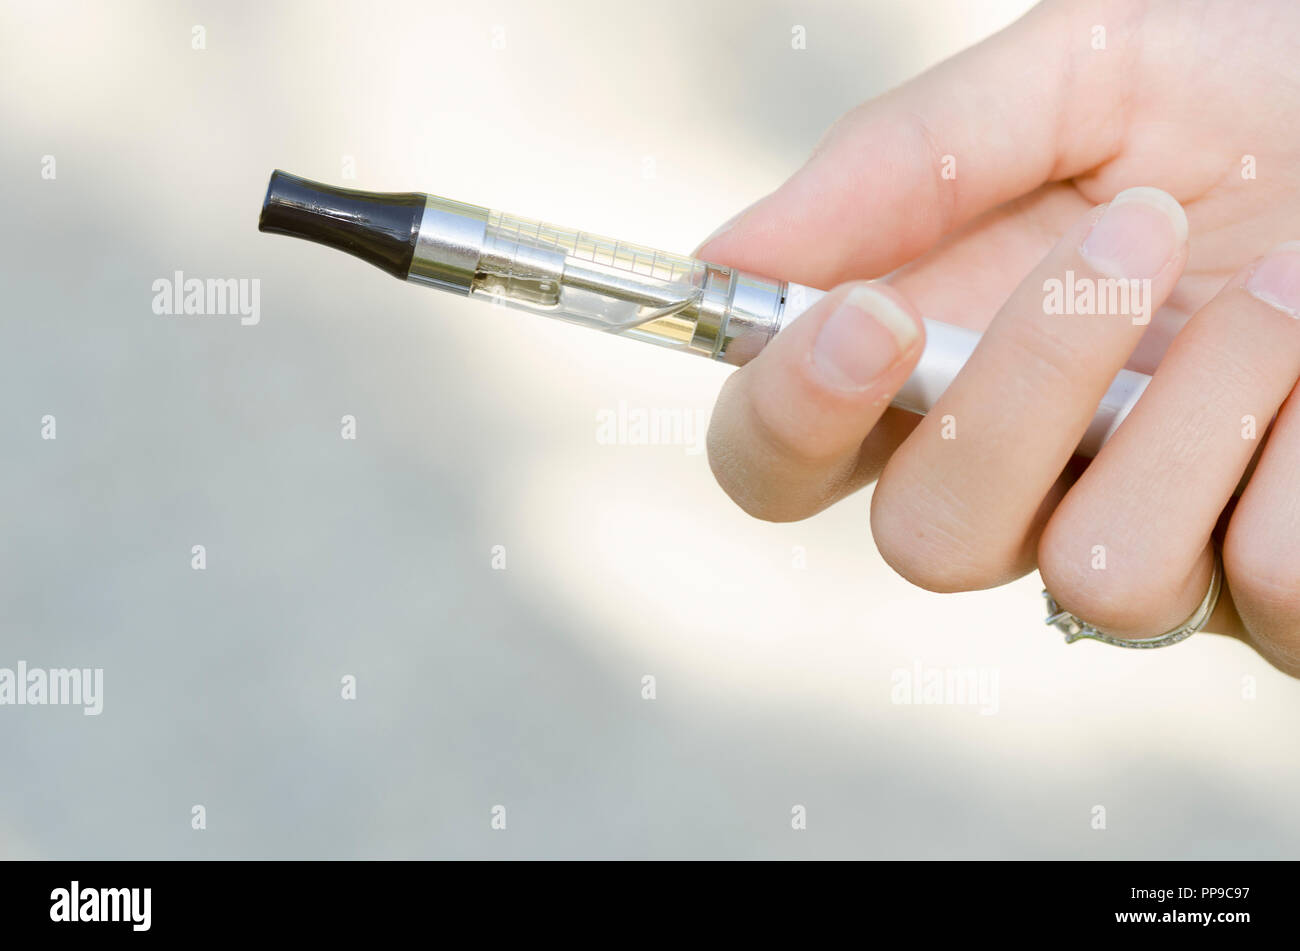 hand holding an electronic cigarette - Stock Image